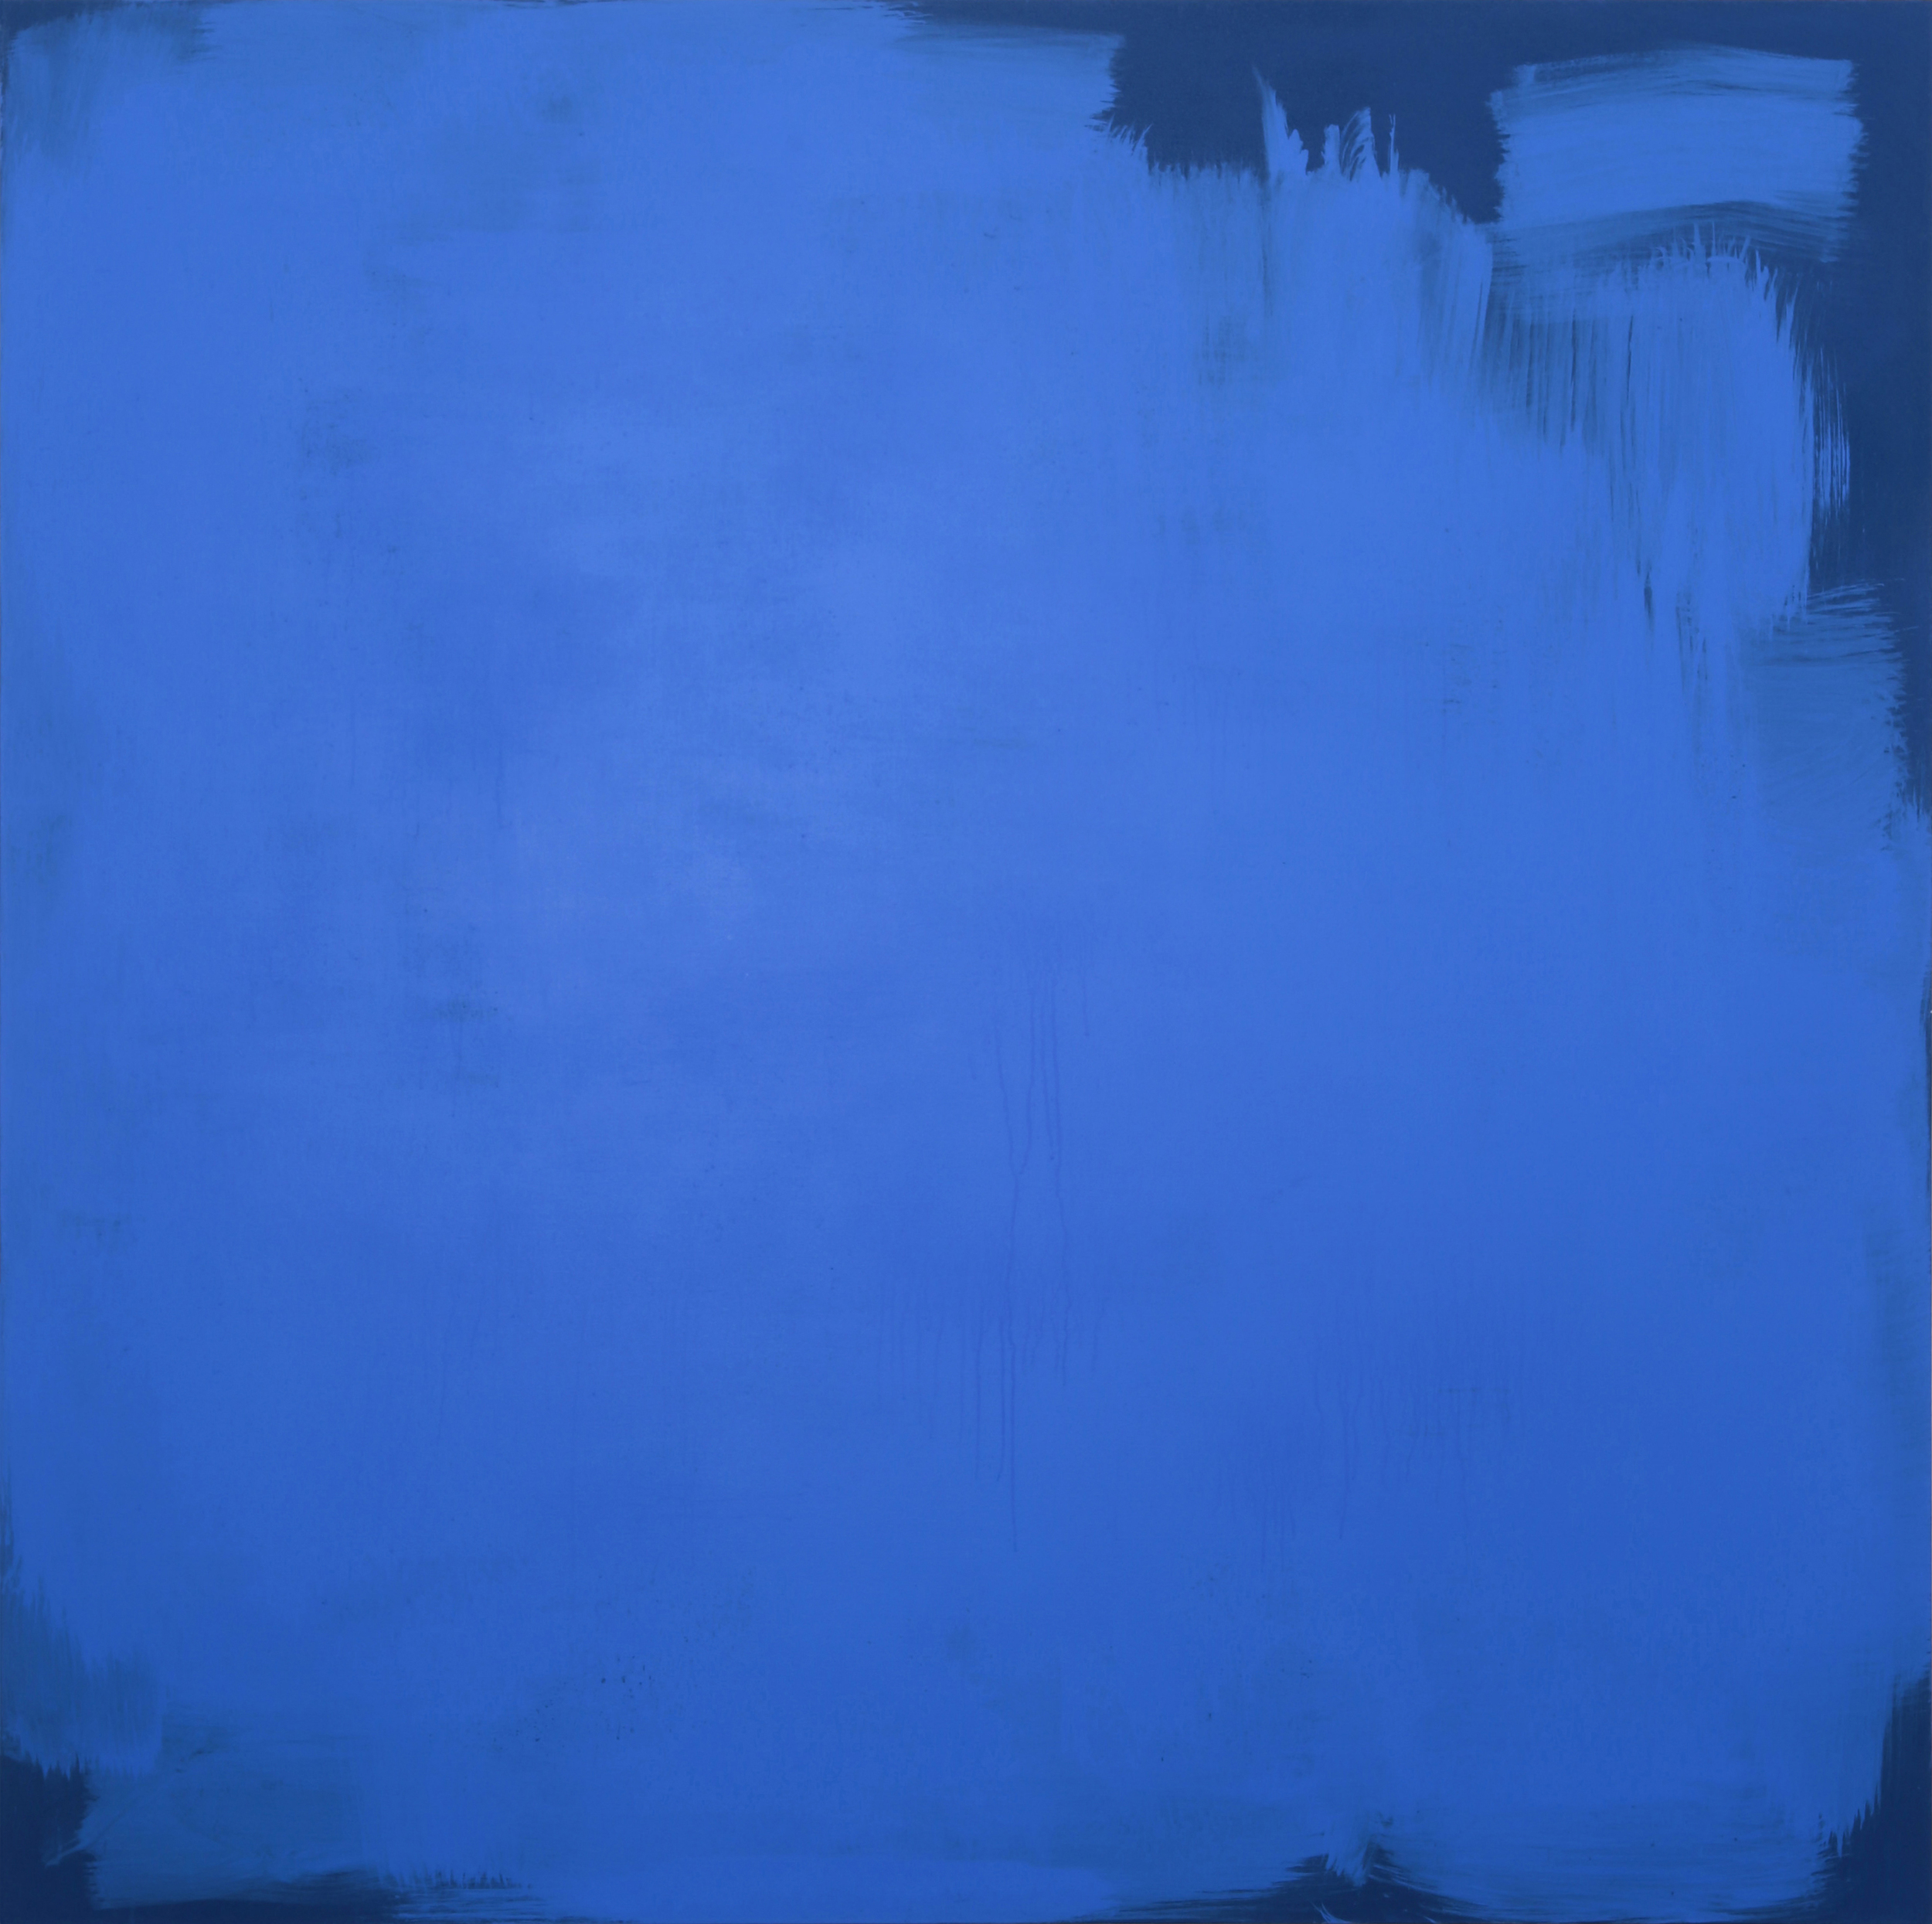 Construction Wall (Blue), 2013